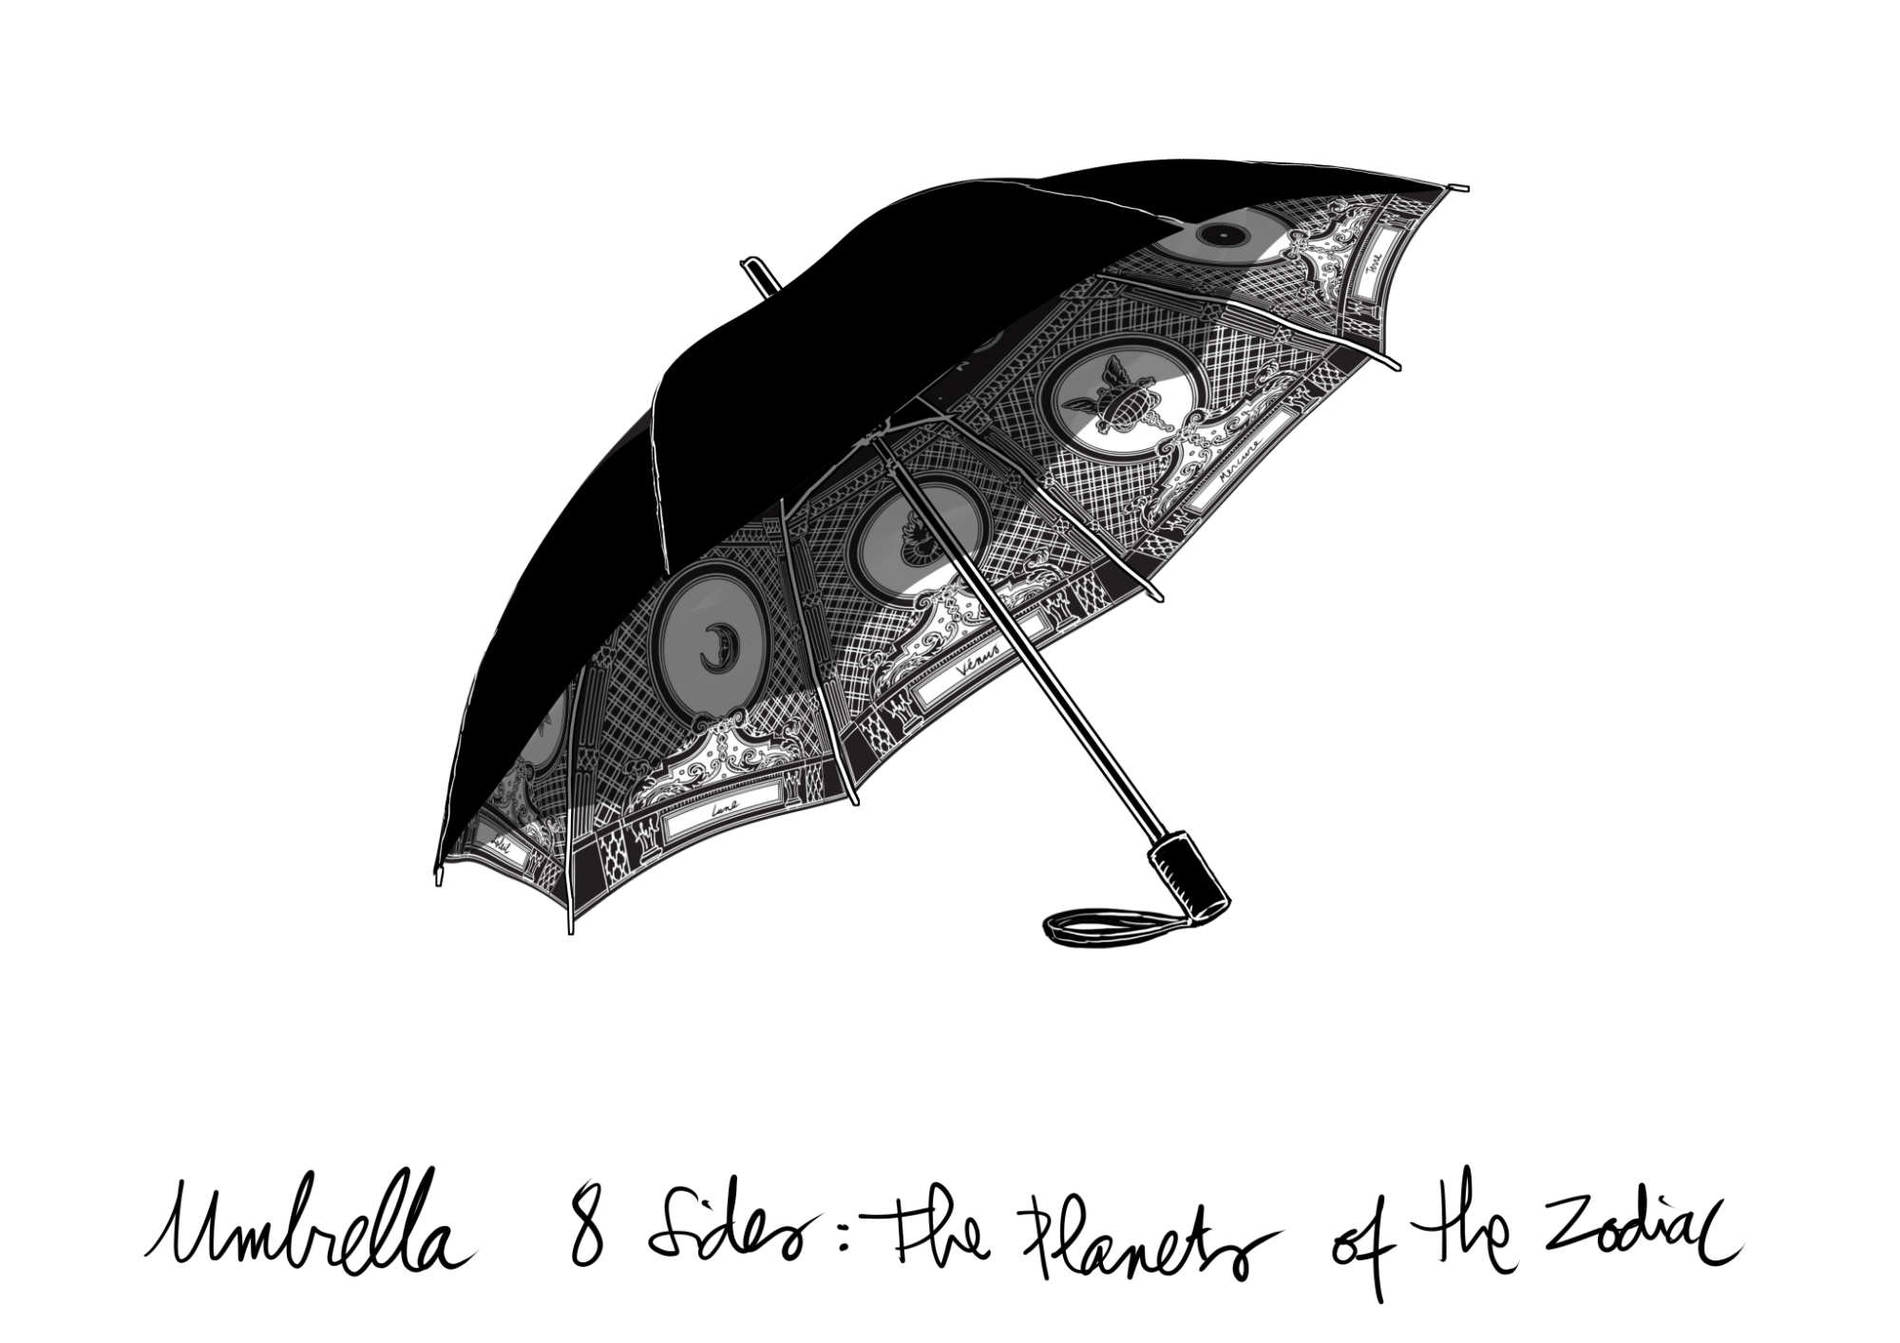 ·: Nicolas Buffe :· - 8 sided umbrella sketch v1,2 d folded_2k